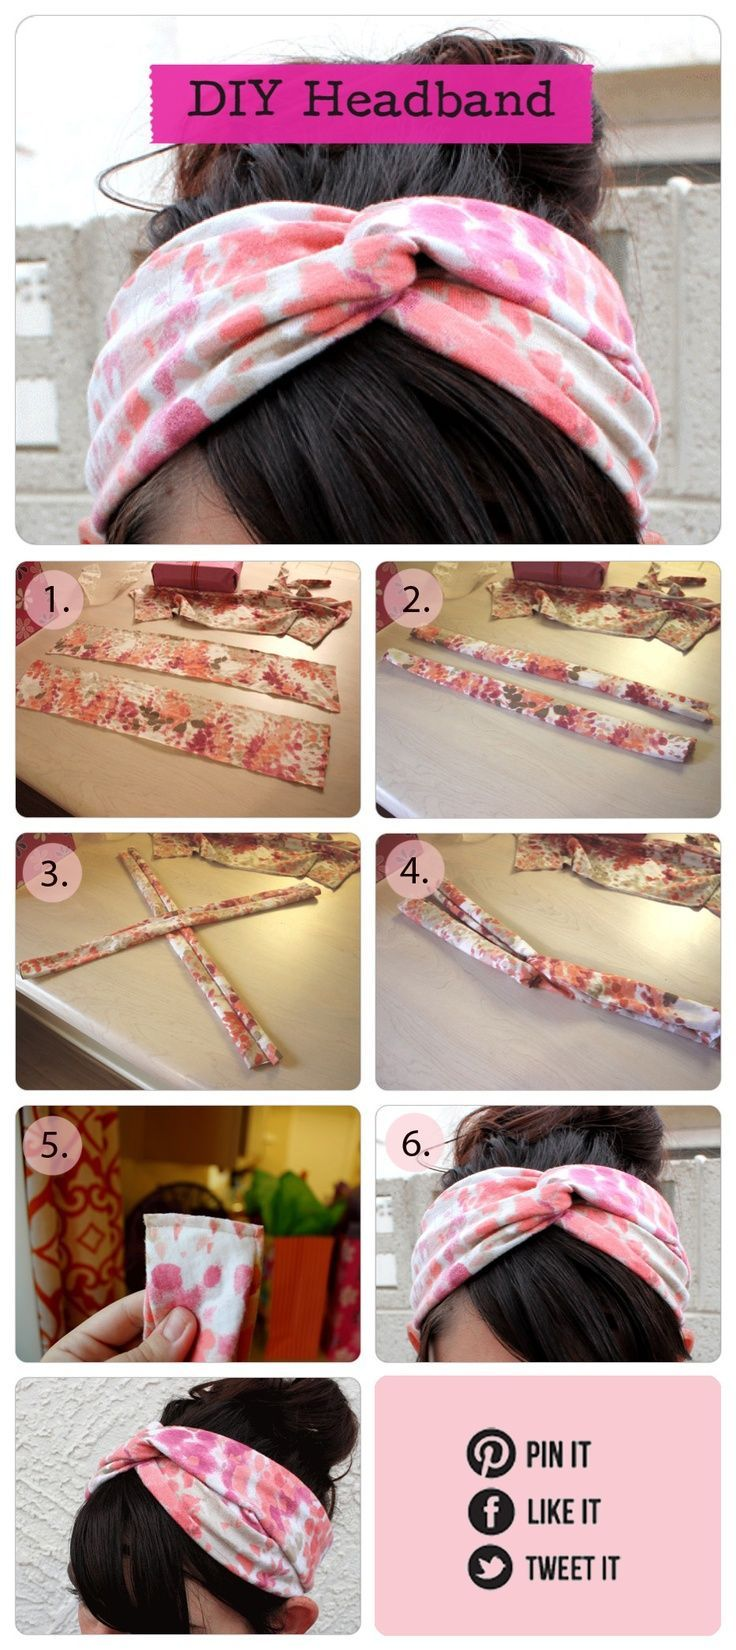 27 Most Popular DIY ideas, DIY Twisted Turban Headband